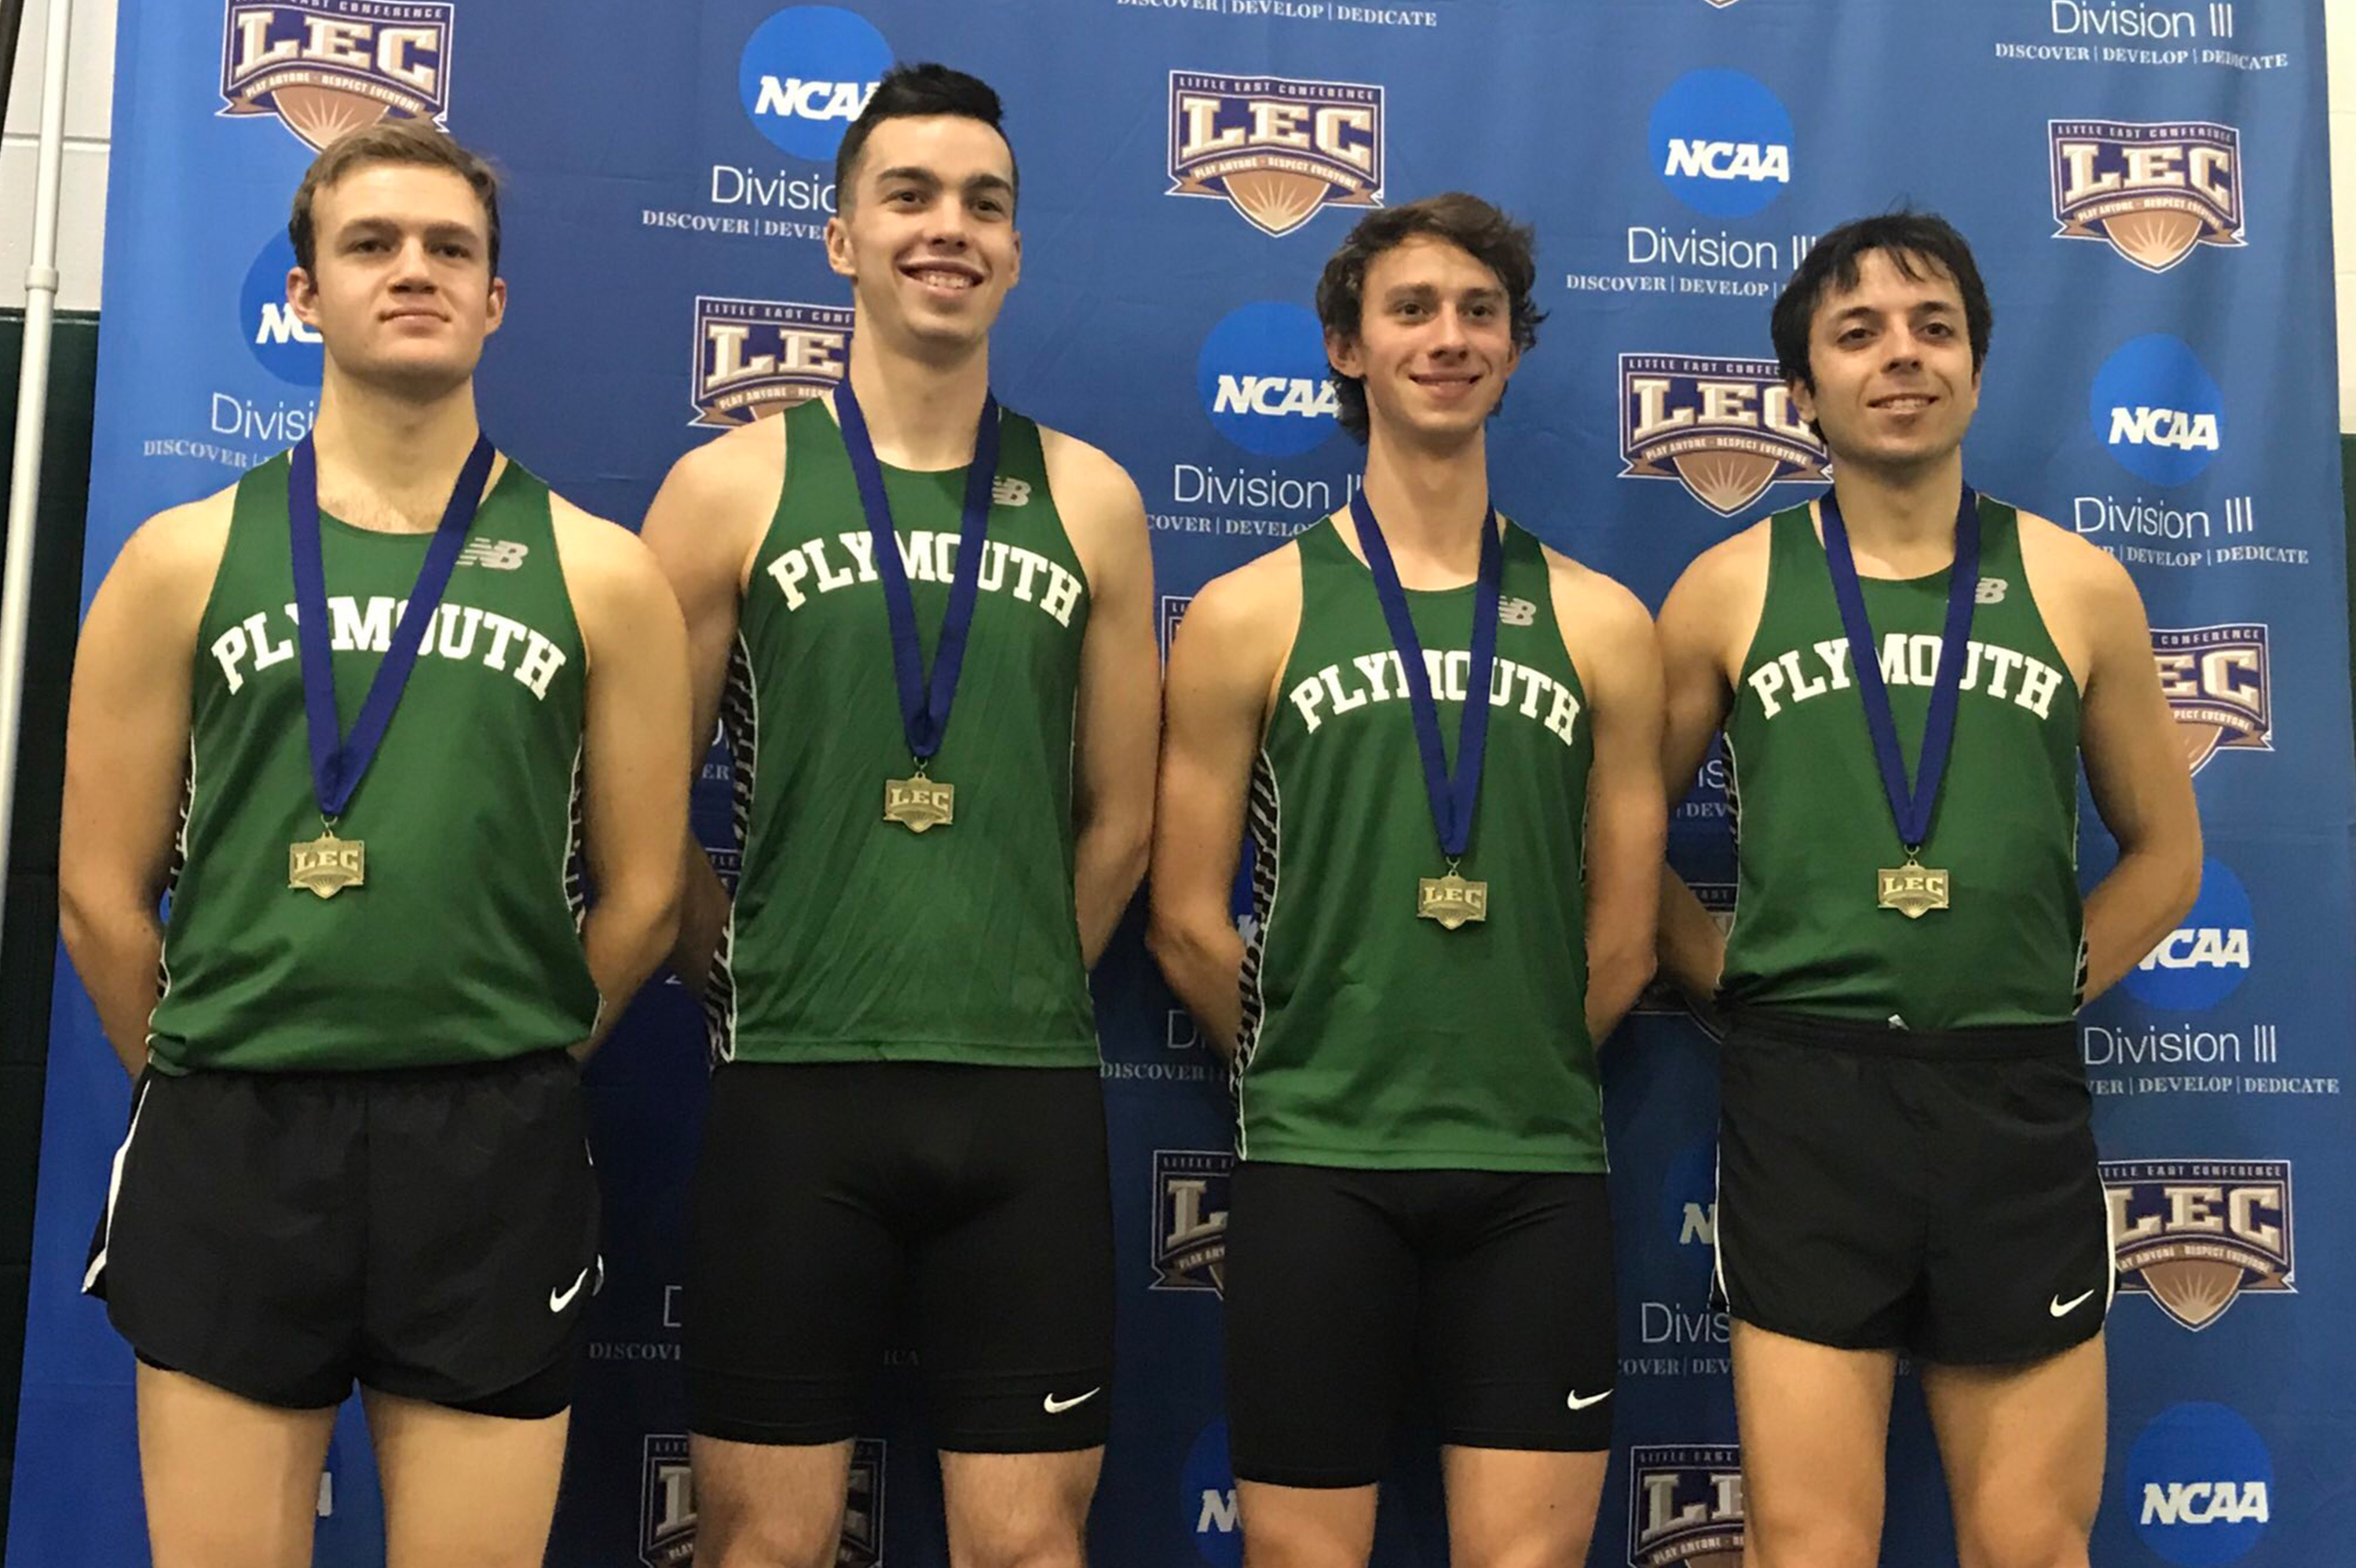 The PSU men's indoor track & field 4x800m relay team consisting of Ben Platt, Nate Belanger, Noah Byington, and Warren Bartlett captured the Little East Conference title with a school-record performance.